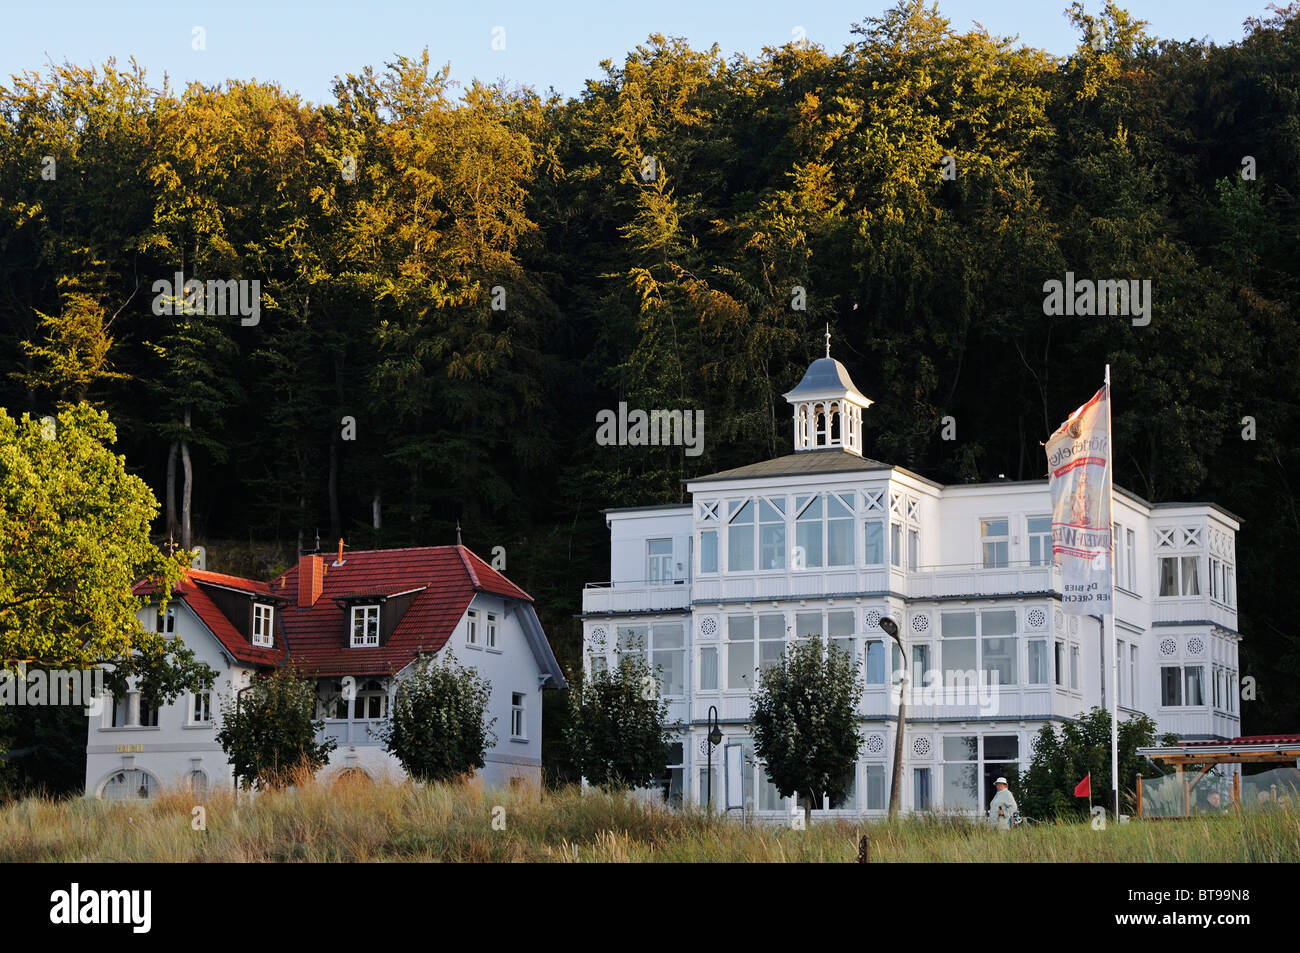 Villas in the seaside-resort architectural style at the beach promenade in the Baltic resort Binz, Ruegen Island - Stock Image